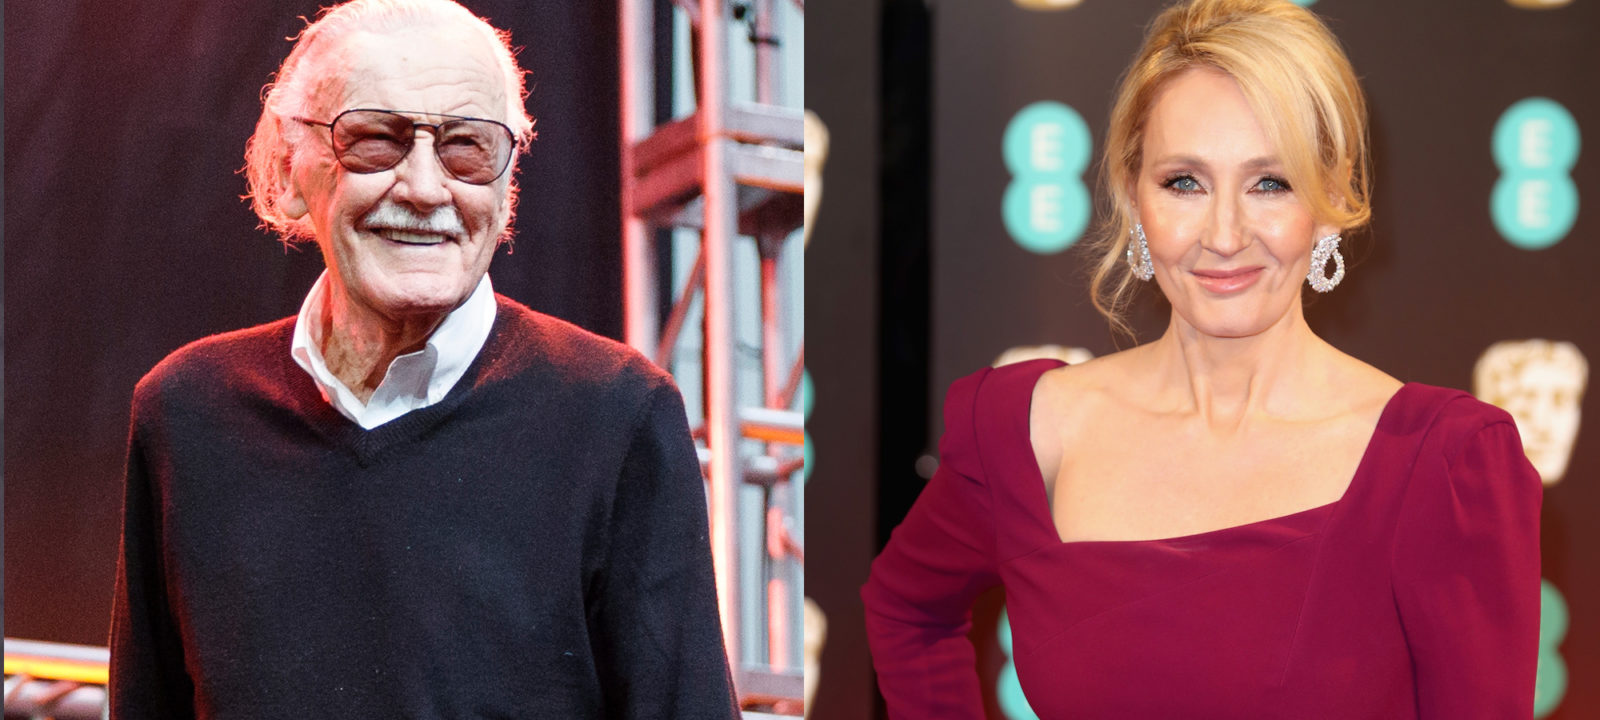 Composite image of Stan Lee and J.K. Rowling